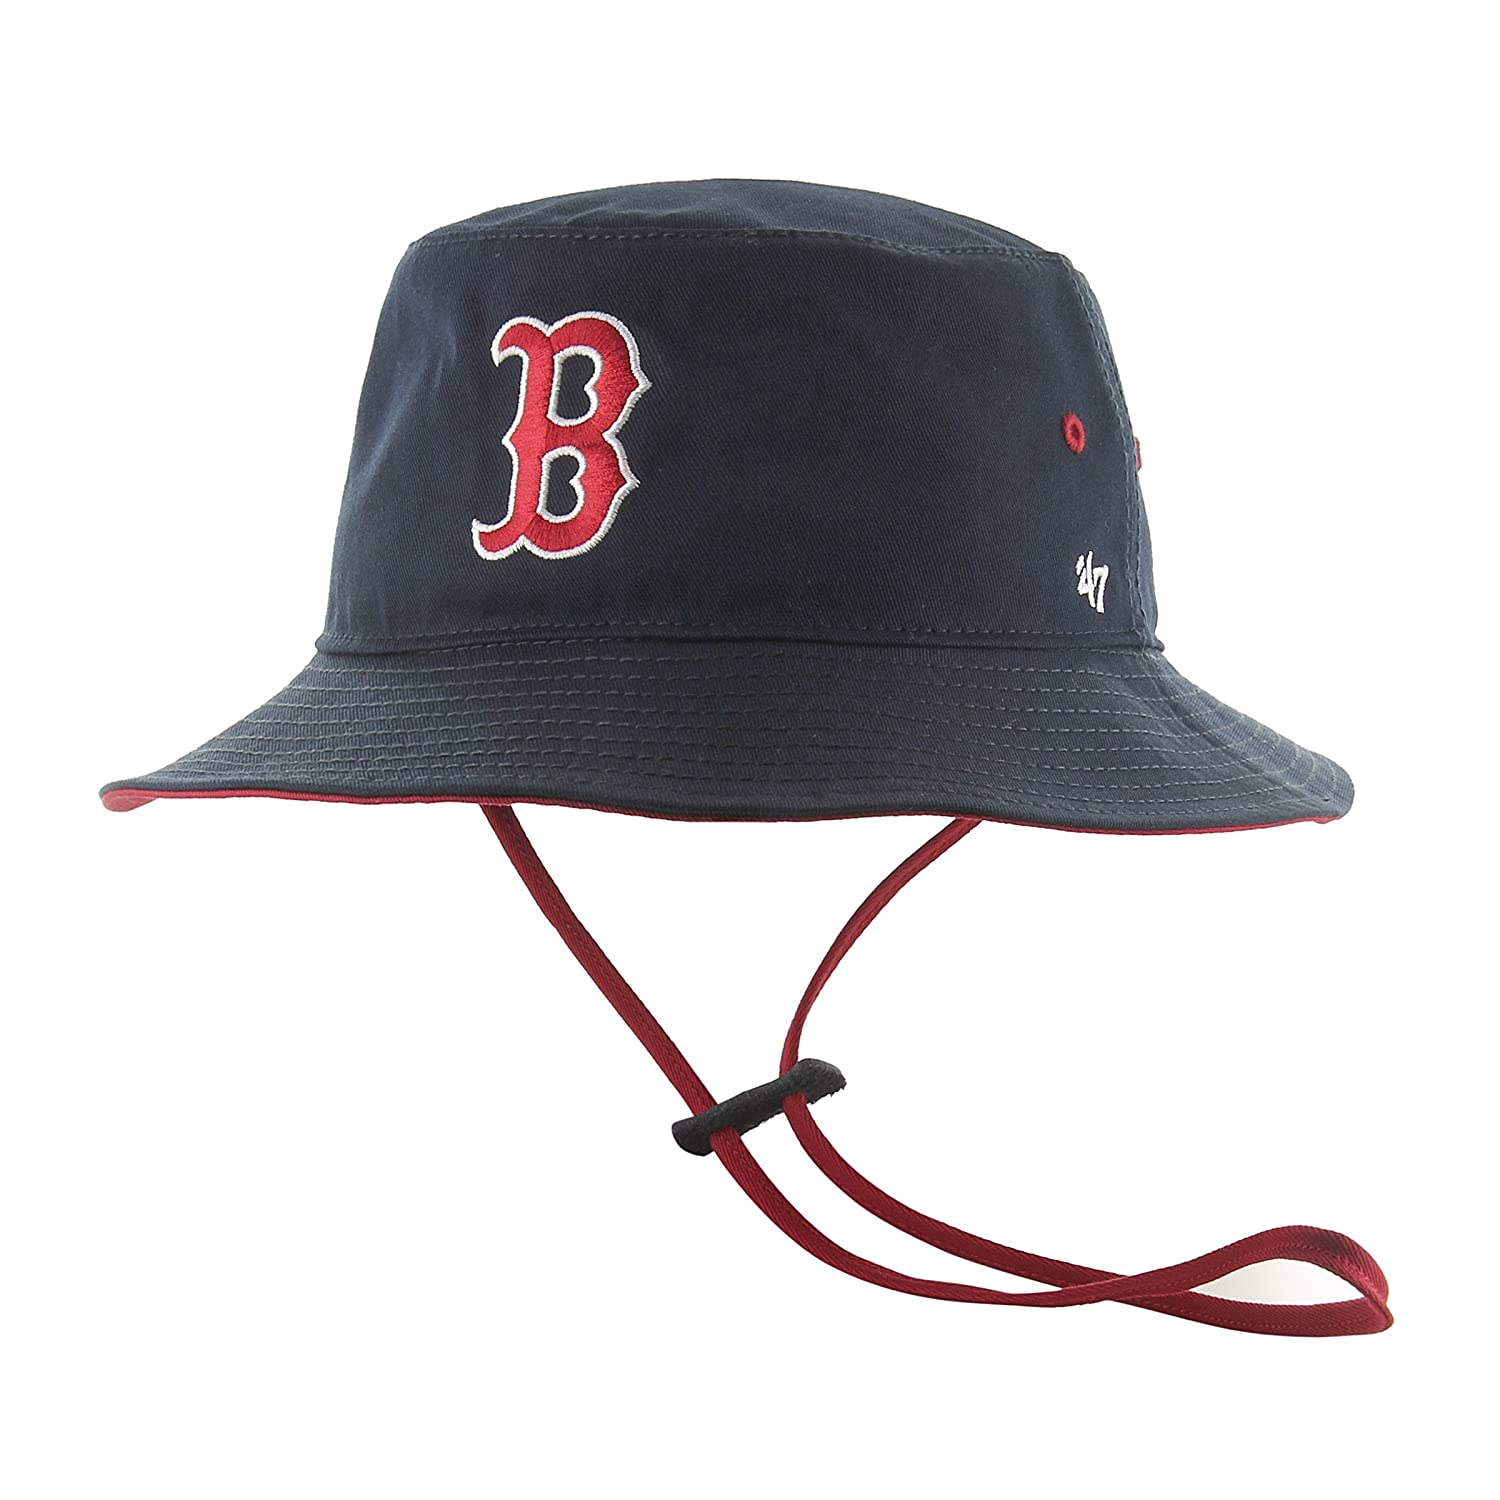 MLB Boston Red Sox Kirby Bucket Hat a6e91d4a038